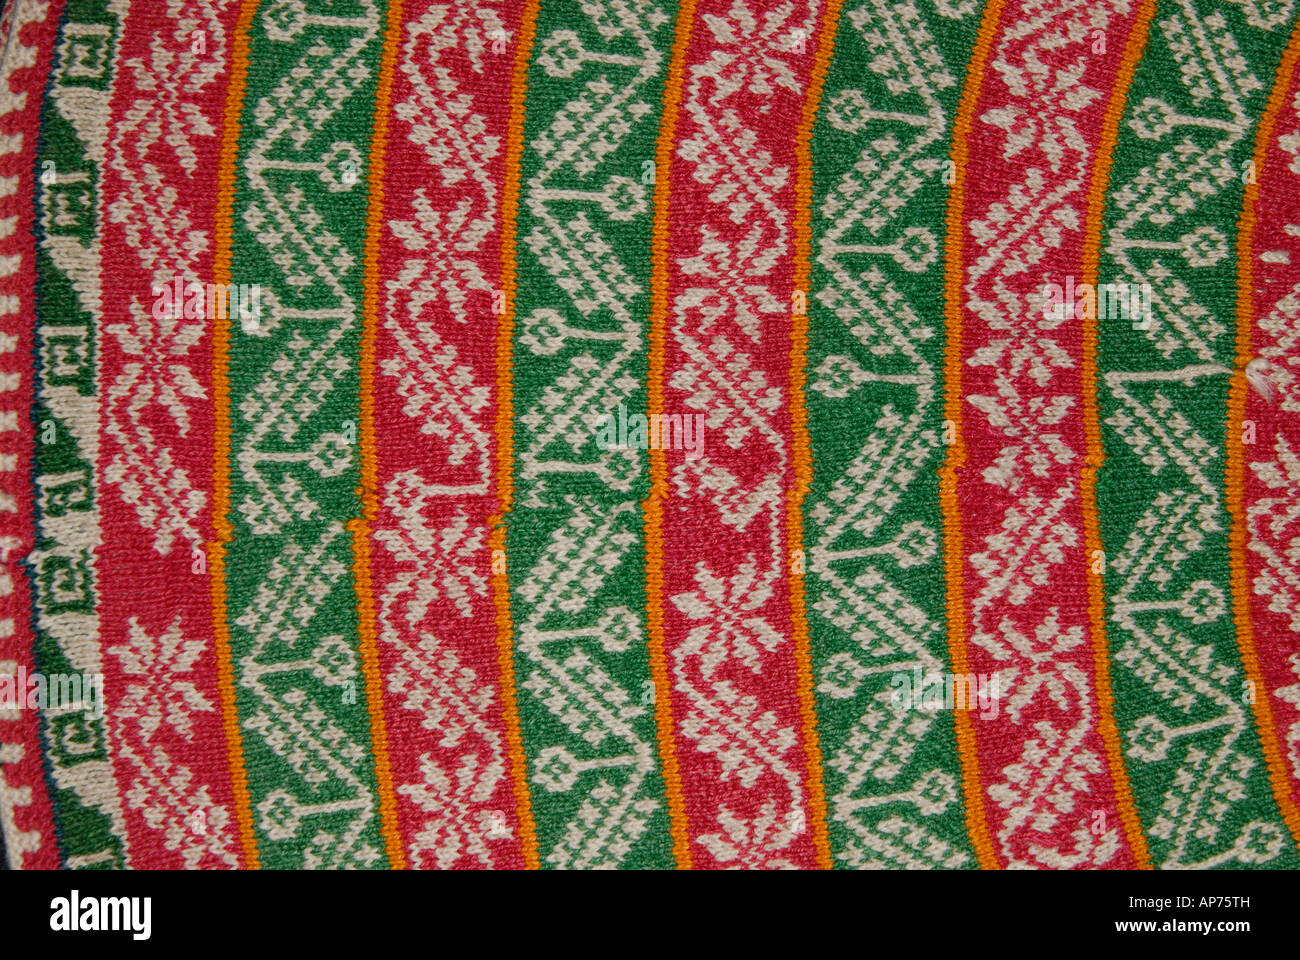 Detail of colourful knitted woollen hat from Taquile Island Lake Titicaca Peru - Stock Image